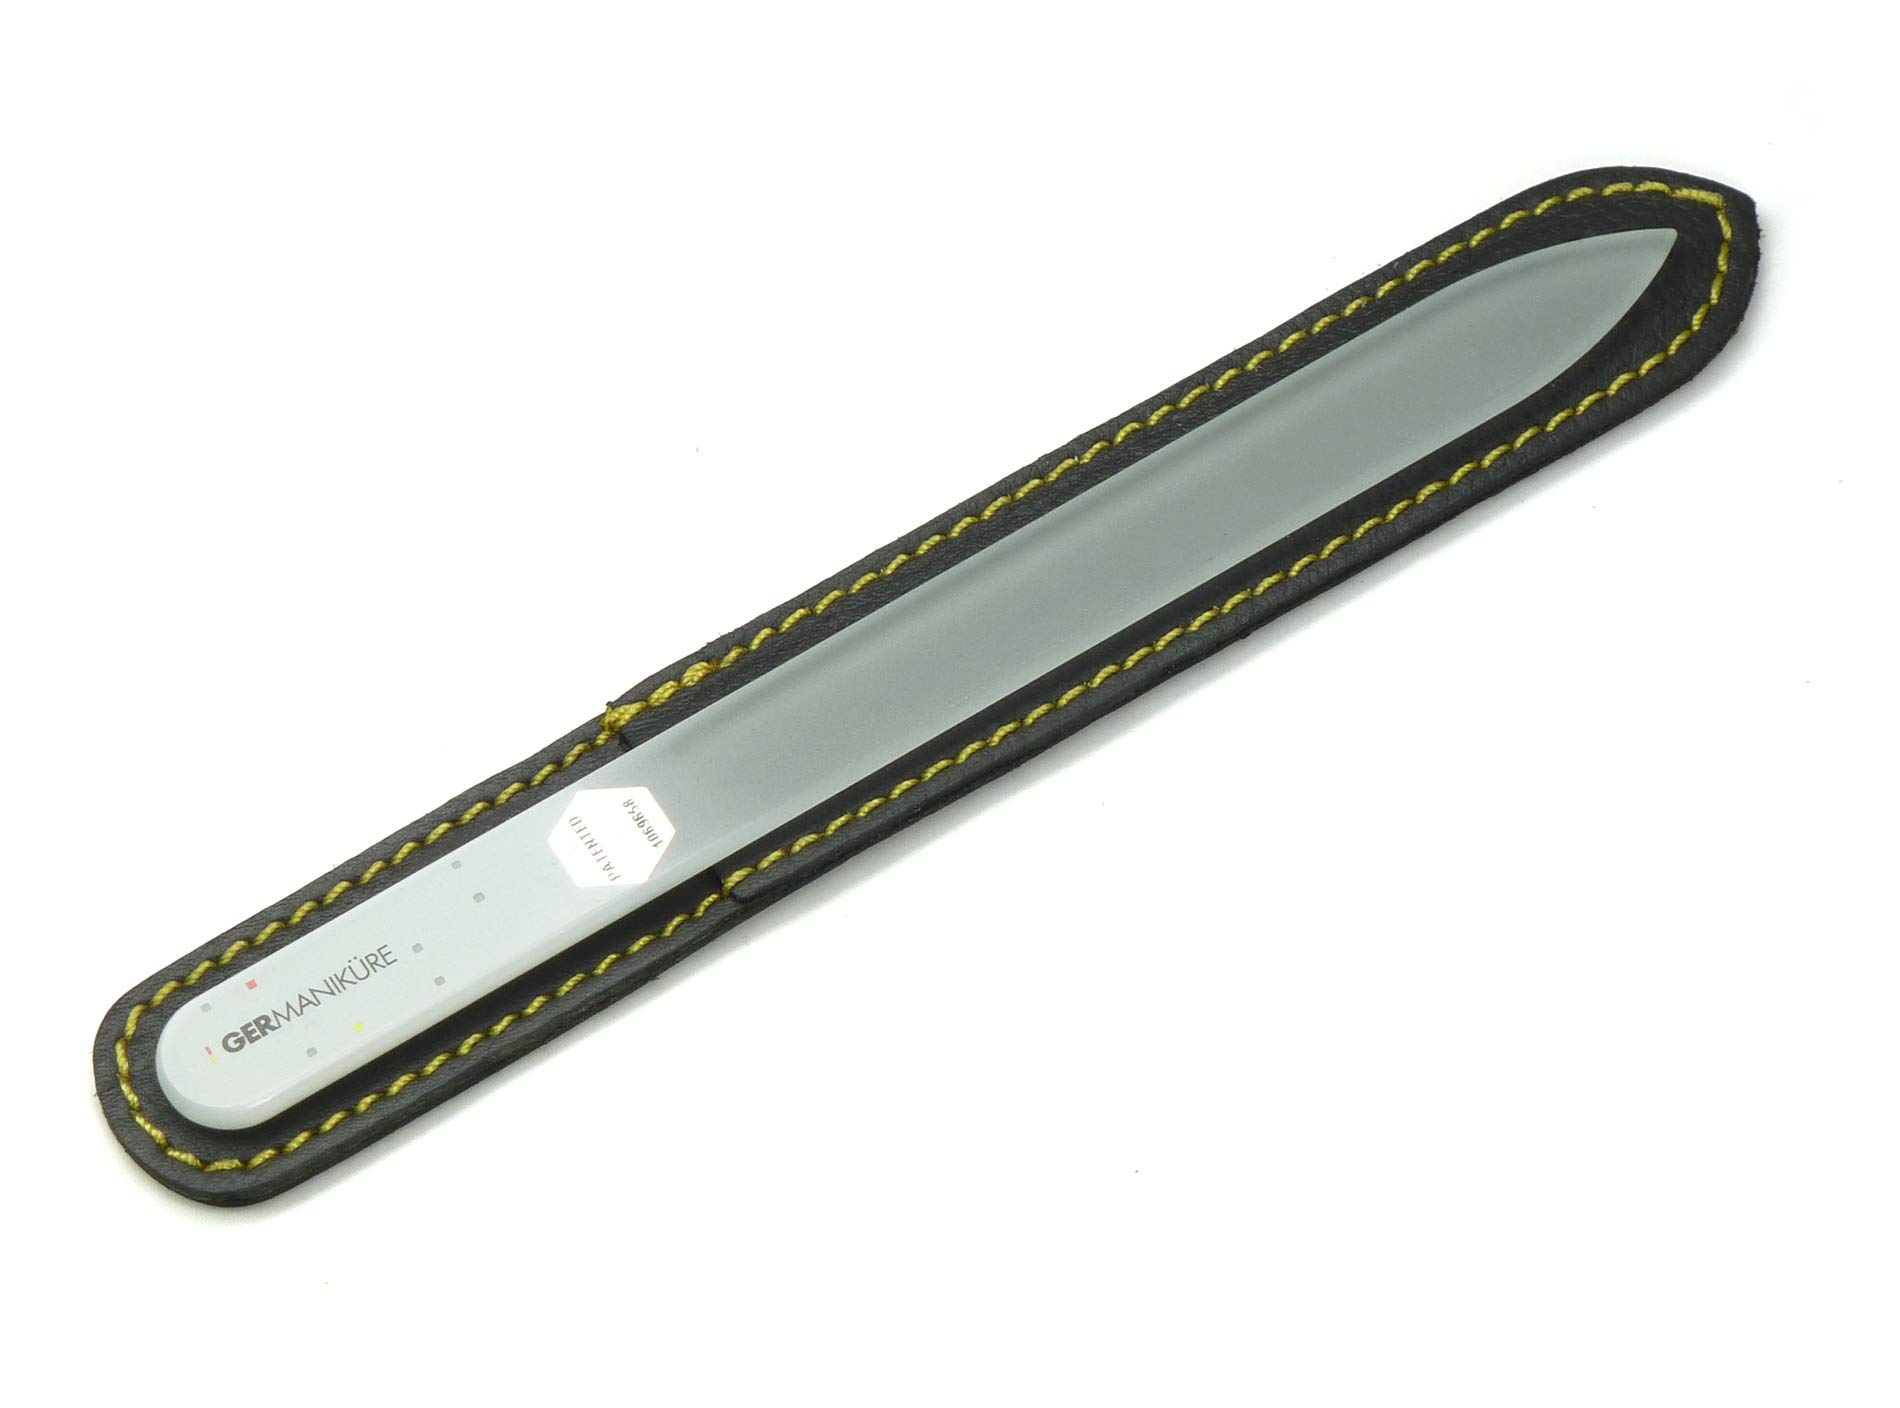 Double-sided crystal glass nail file in leather case, 3mm thick. Made by GERmanikure